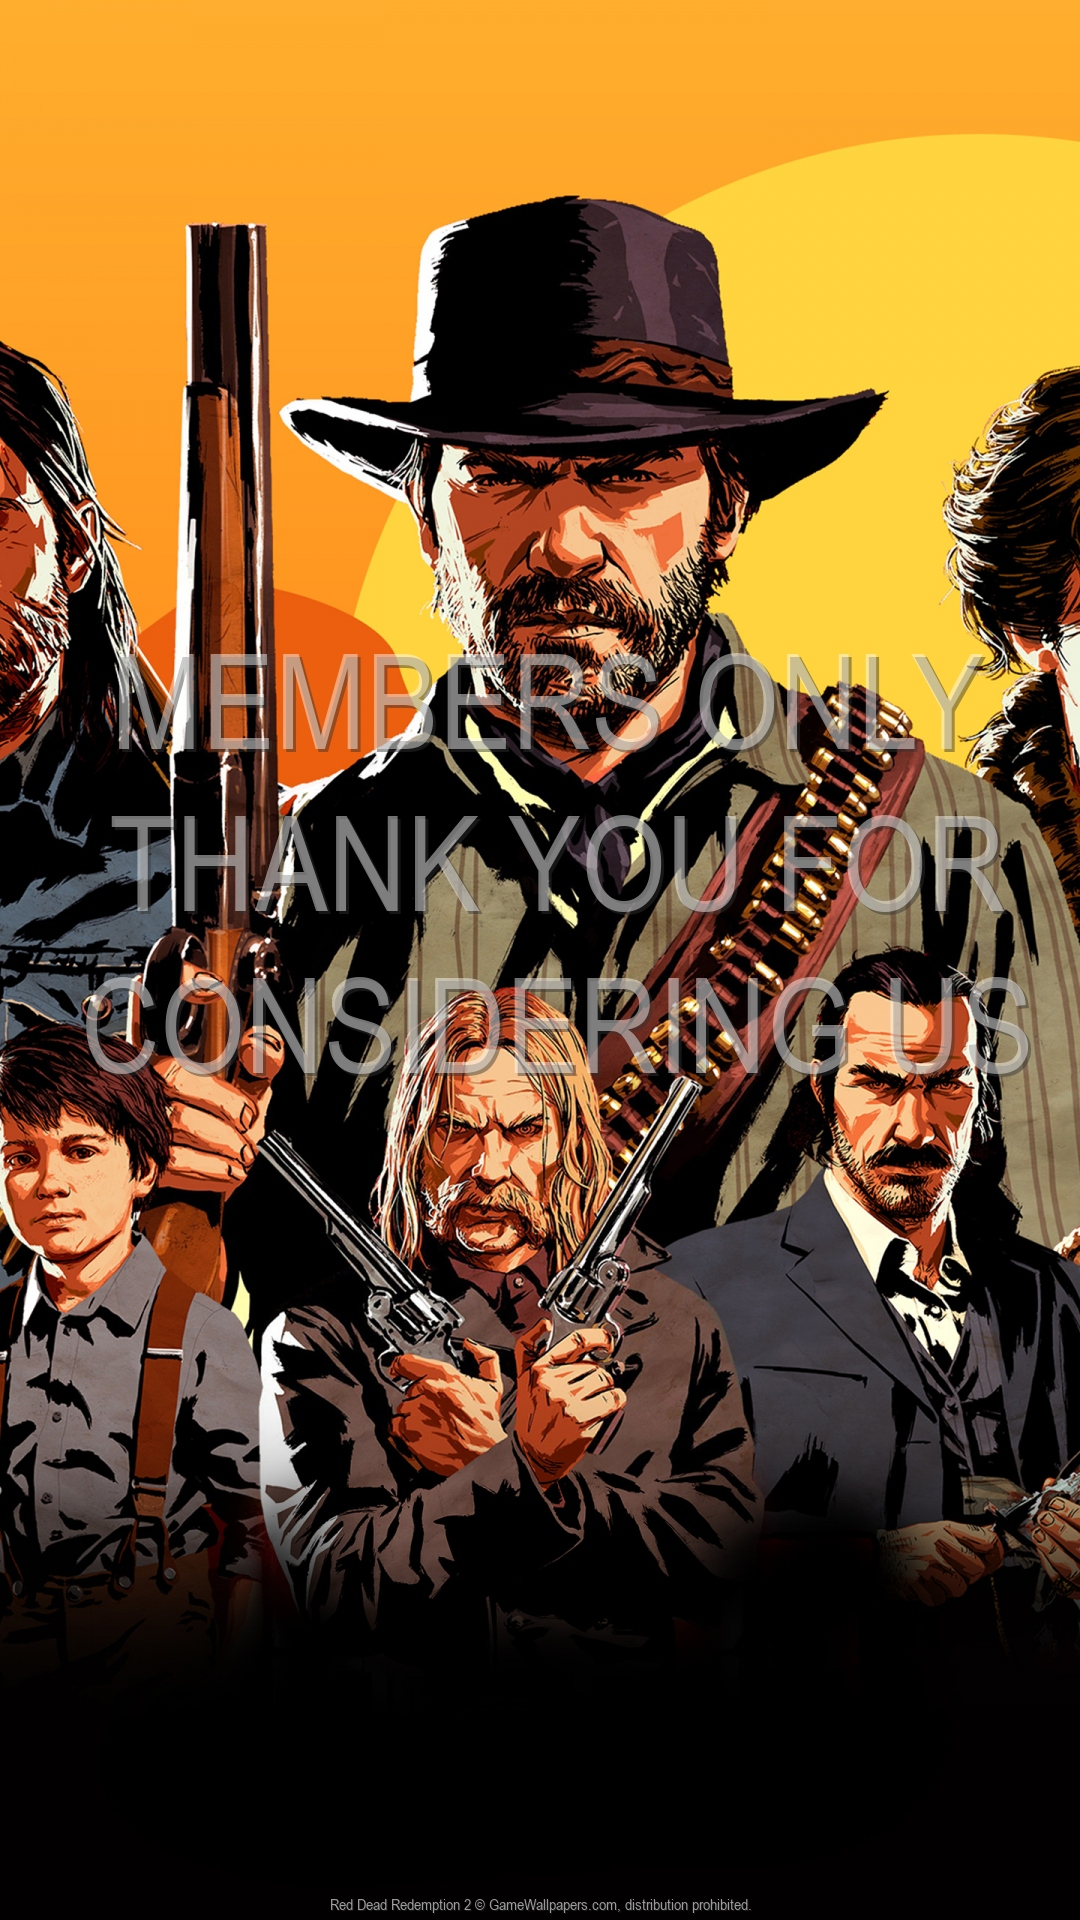 Red Dead Redemption 2 1920x1080 Móvil fondo de escritorio 03